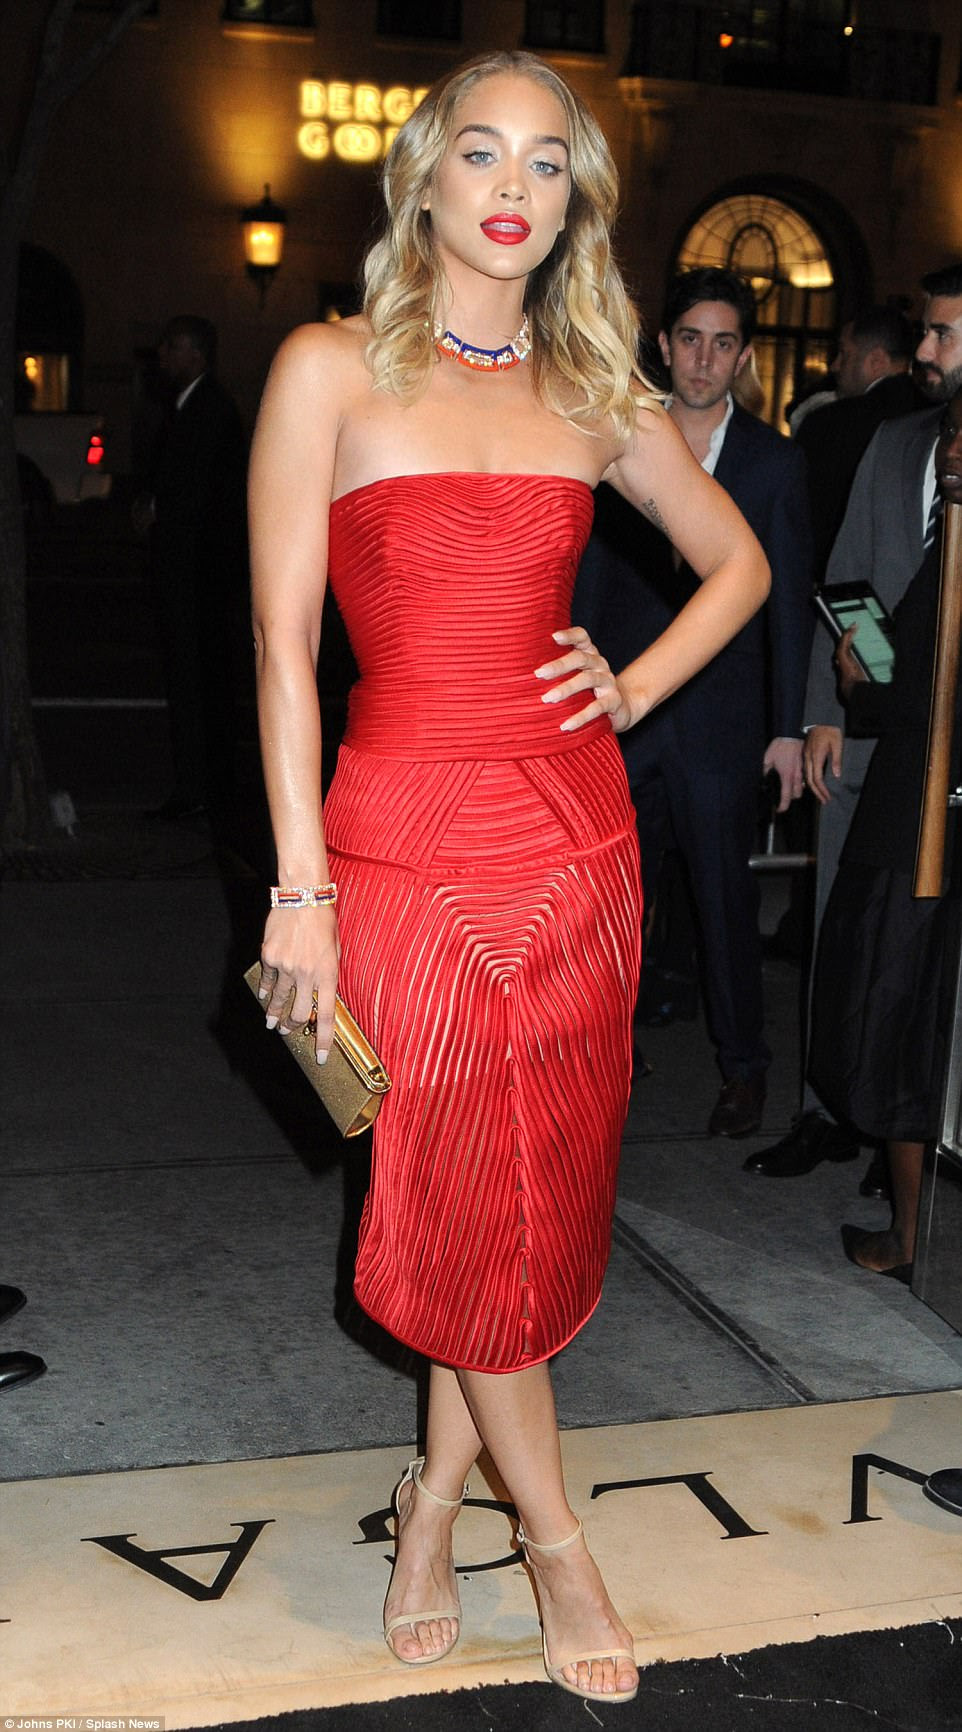 Chic: The blonde bombshell was a vision of beauty as she pulled a variety of poses at the venue